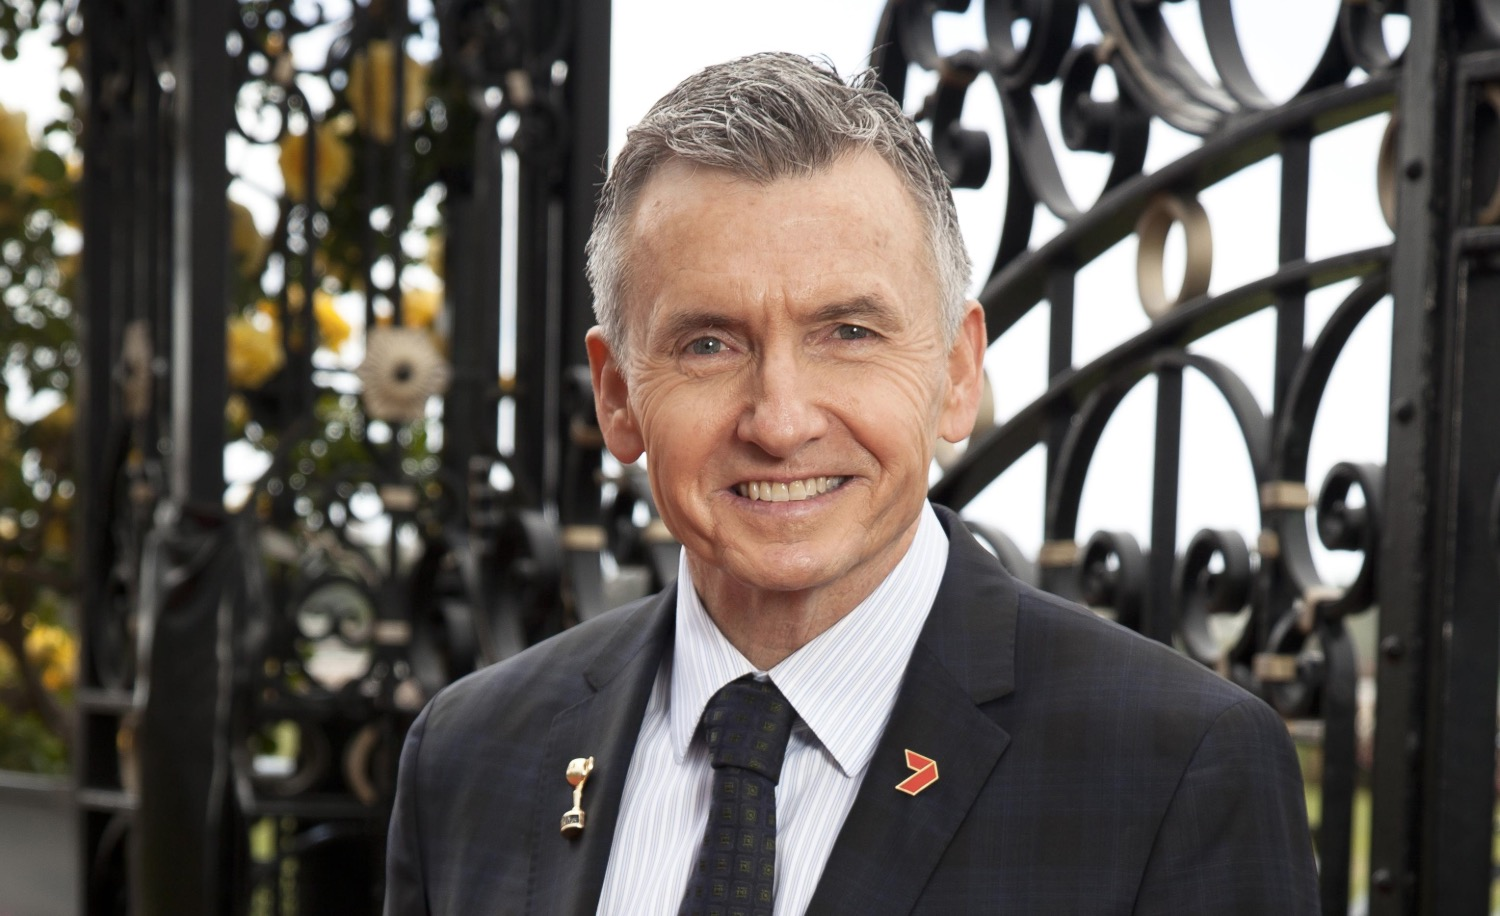 Bruce McAvaney  image source -  The West Australian